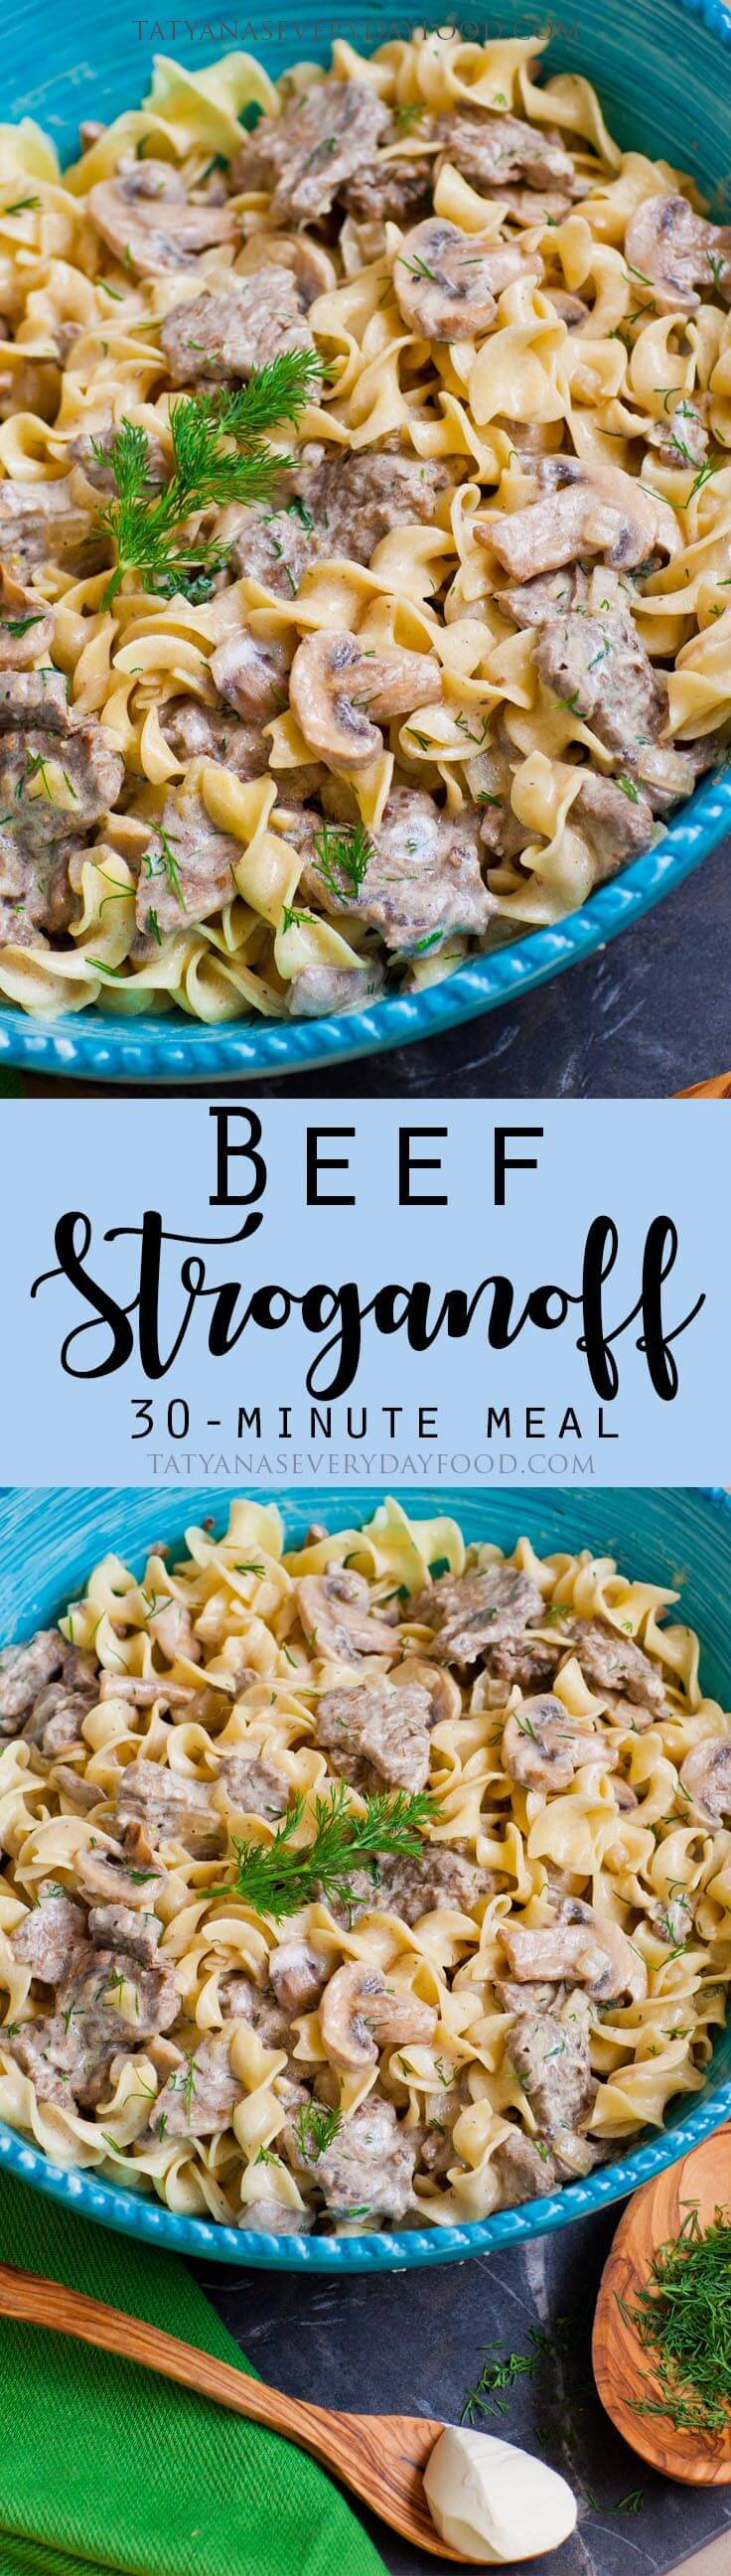 Quick & Easy Beef Stroganoff Recipe with video